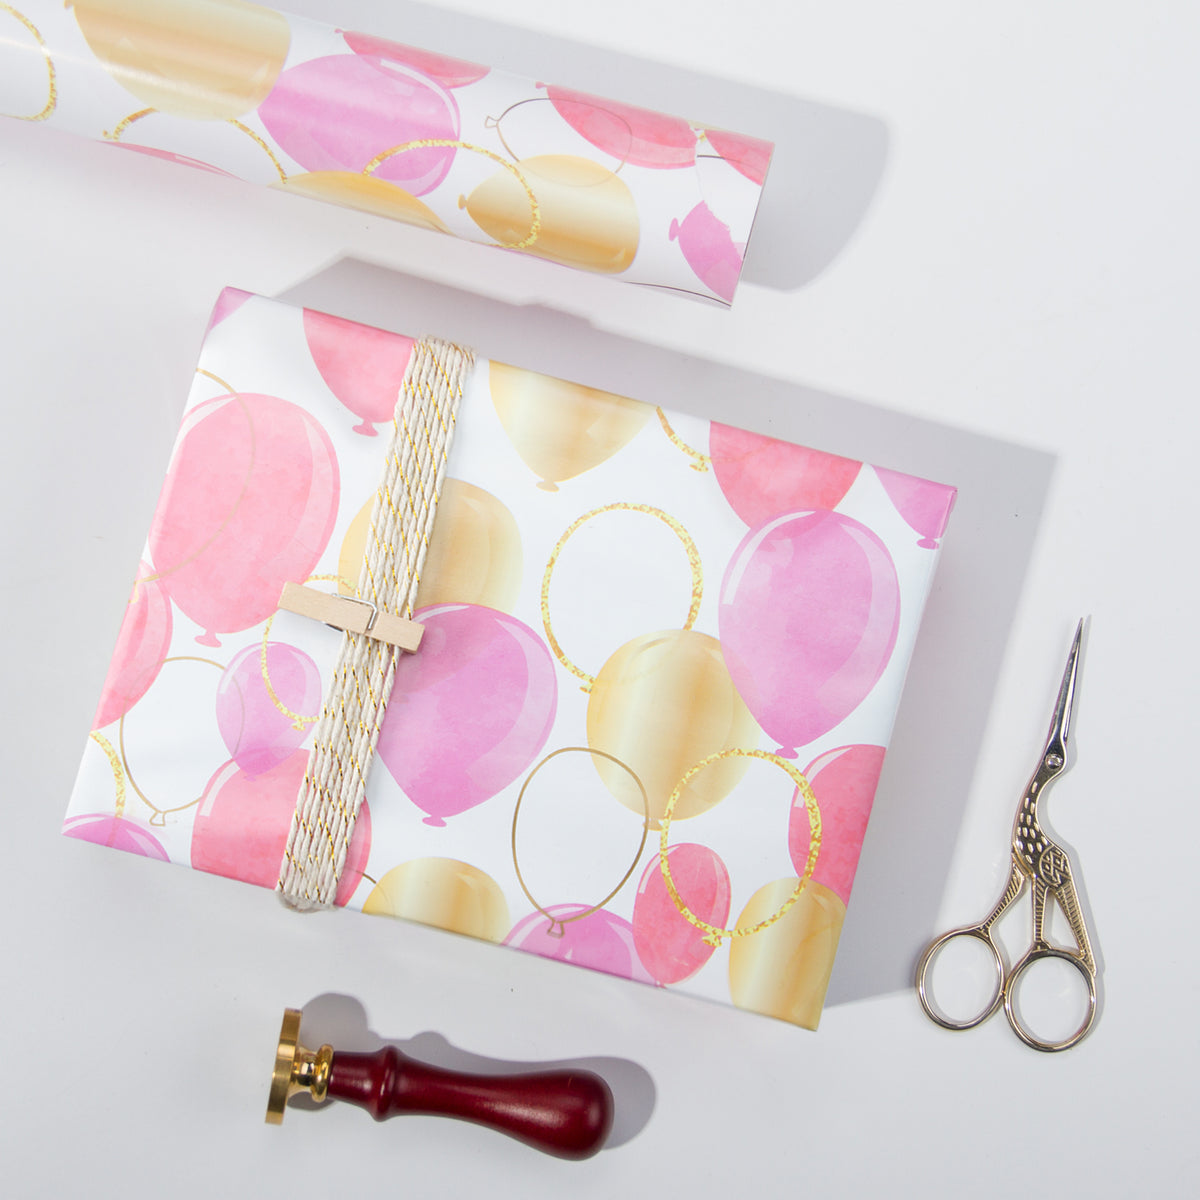 Wrapaholic-Pink-Purple-Gold-Print-Celebrating-Balloon-Design Gift-Wrapping-Paper-Roll-6